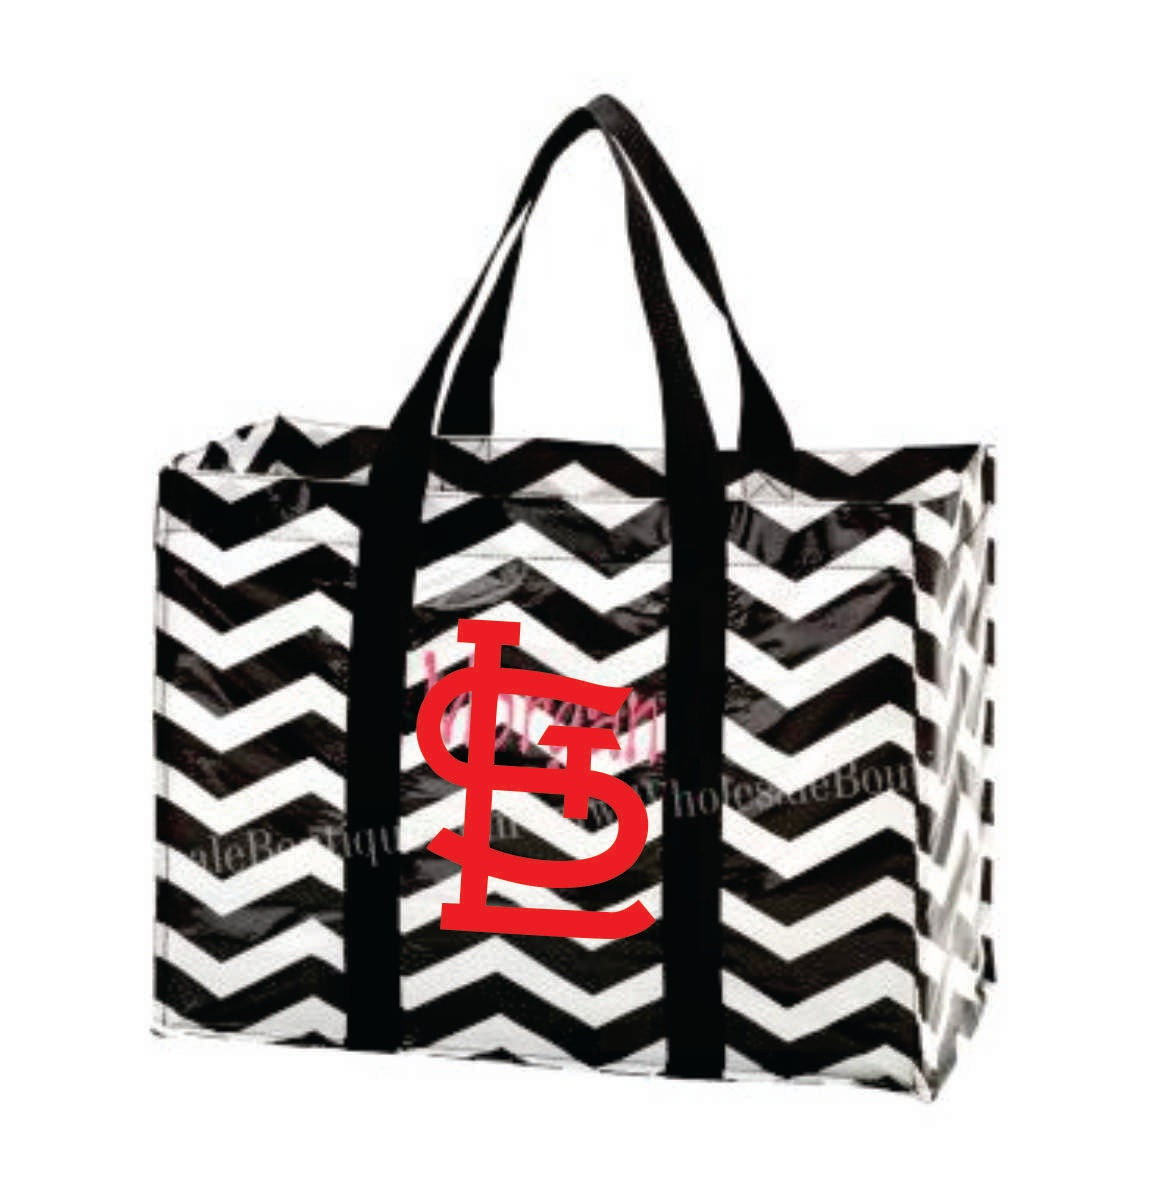 Chevron Tote Bag Black White Monogrammed embroidered by ...